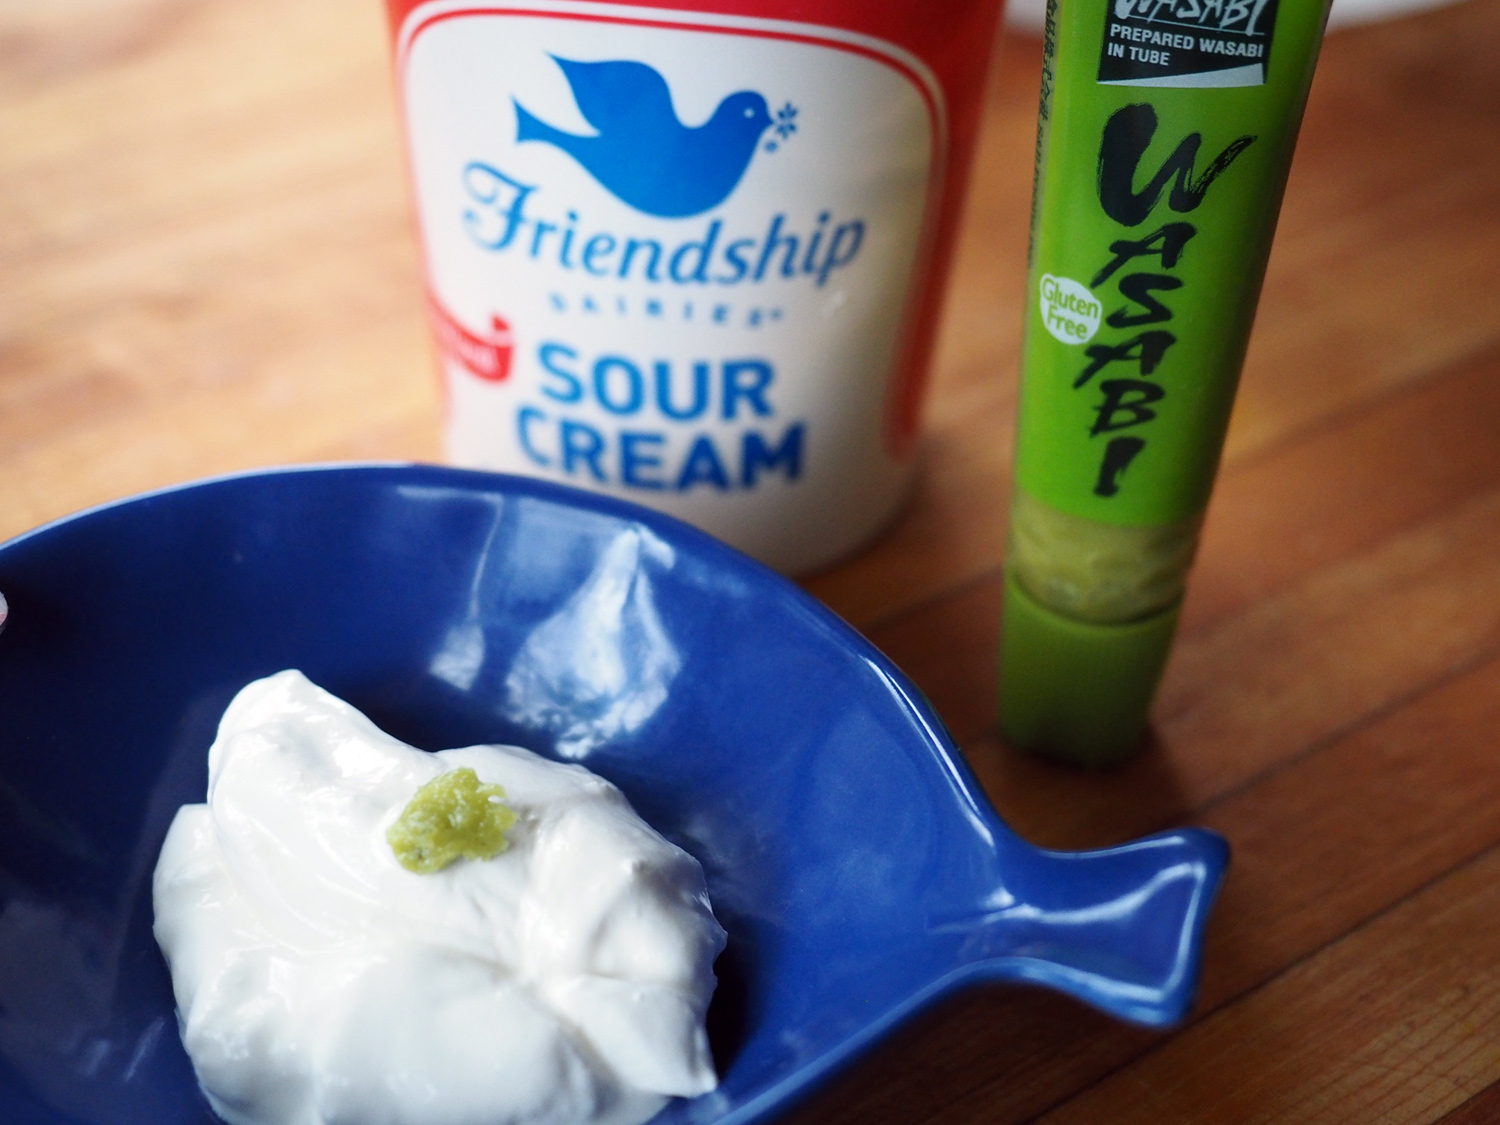 Wasabi comes in powder form or paste, and can be found in most grocery stores in the Japanese section.